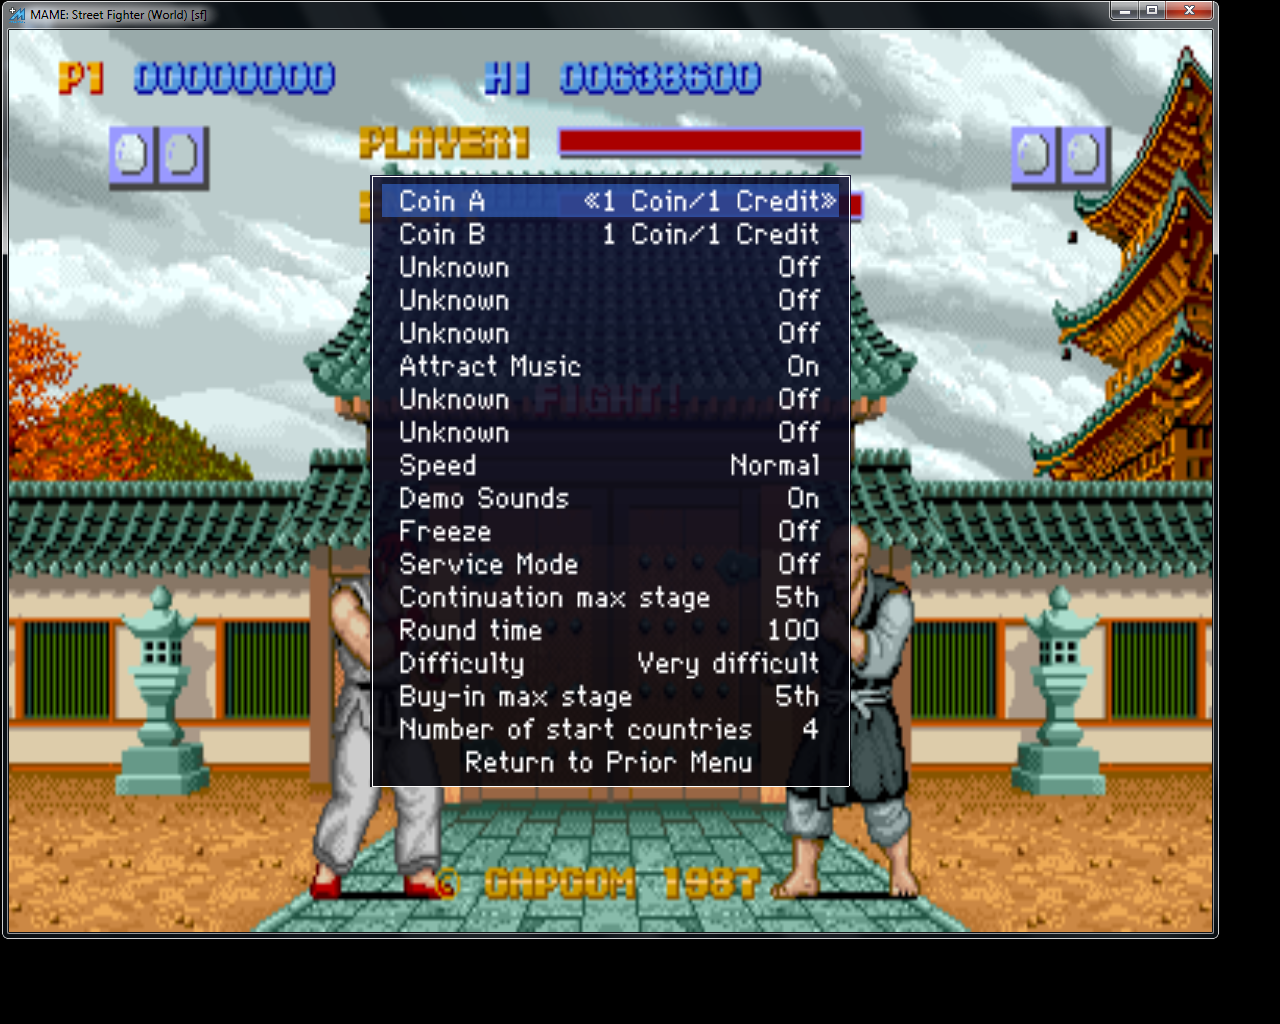 bubufubu: Street Fighter [Very Difficult] [sf] (Arcade Emulated / M.A.M.E.) 638,600 points on 2015-07-28 15:27:51